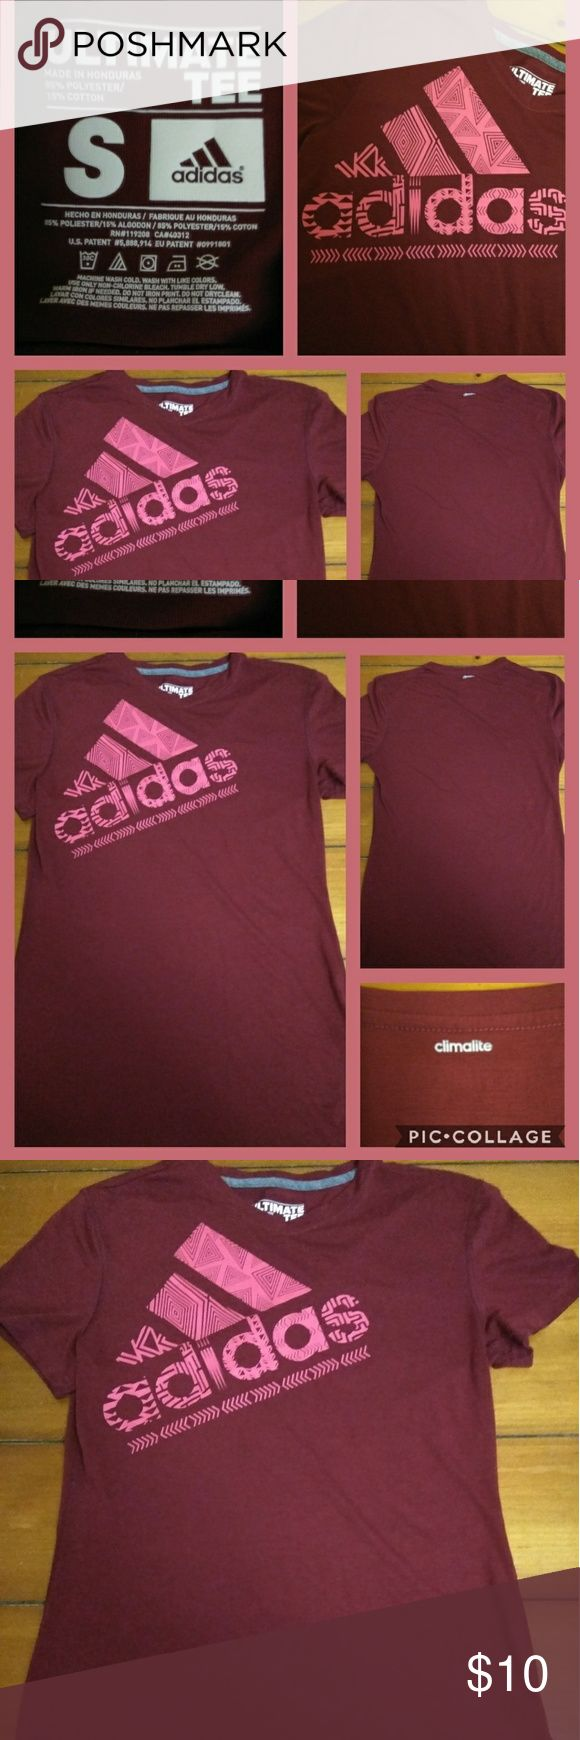 Adidas women's red and pink ultimate tee vneck Adidas women's red and pink ultimate tee/ V- neck, says Adidas on front and climalite in silver on the back of neck. In a size small. excellent condition! adidas Tops Tees - Short Sleeve